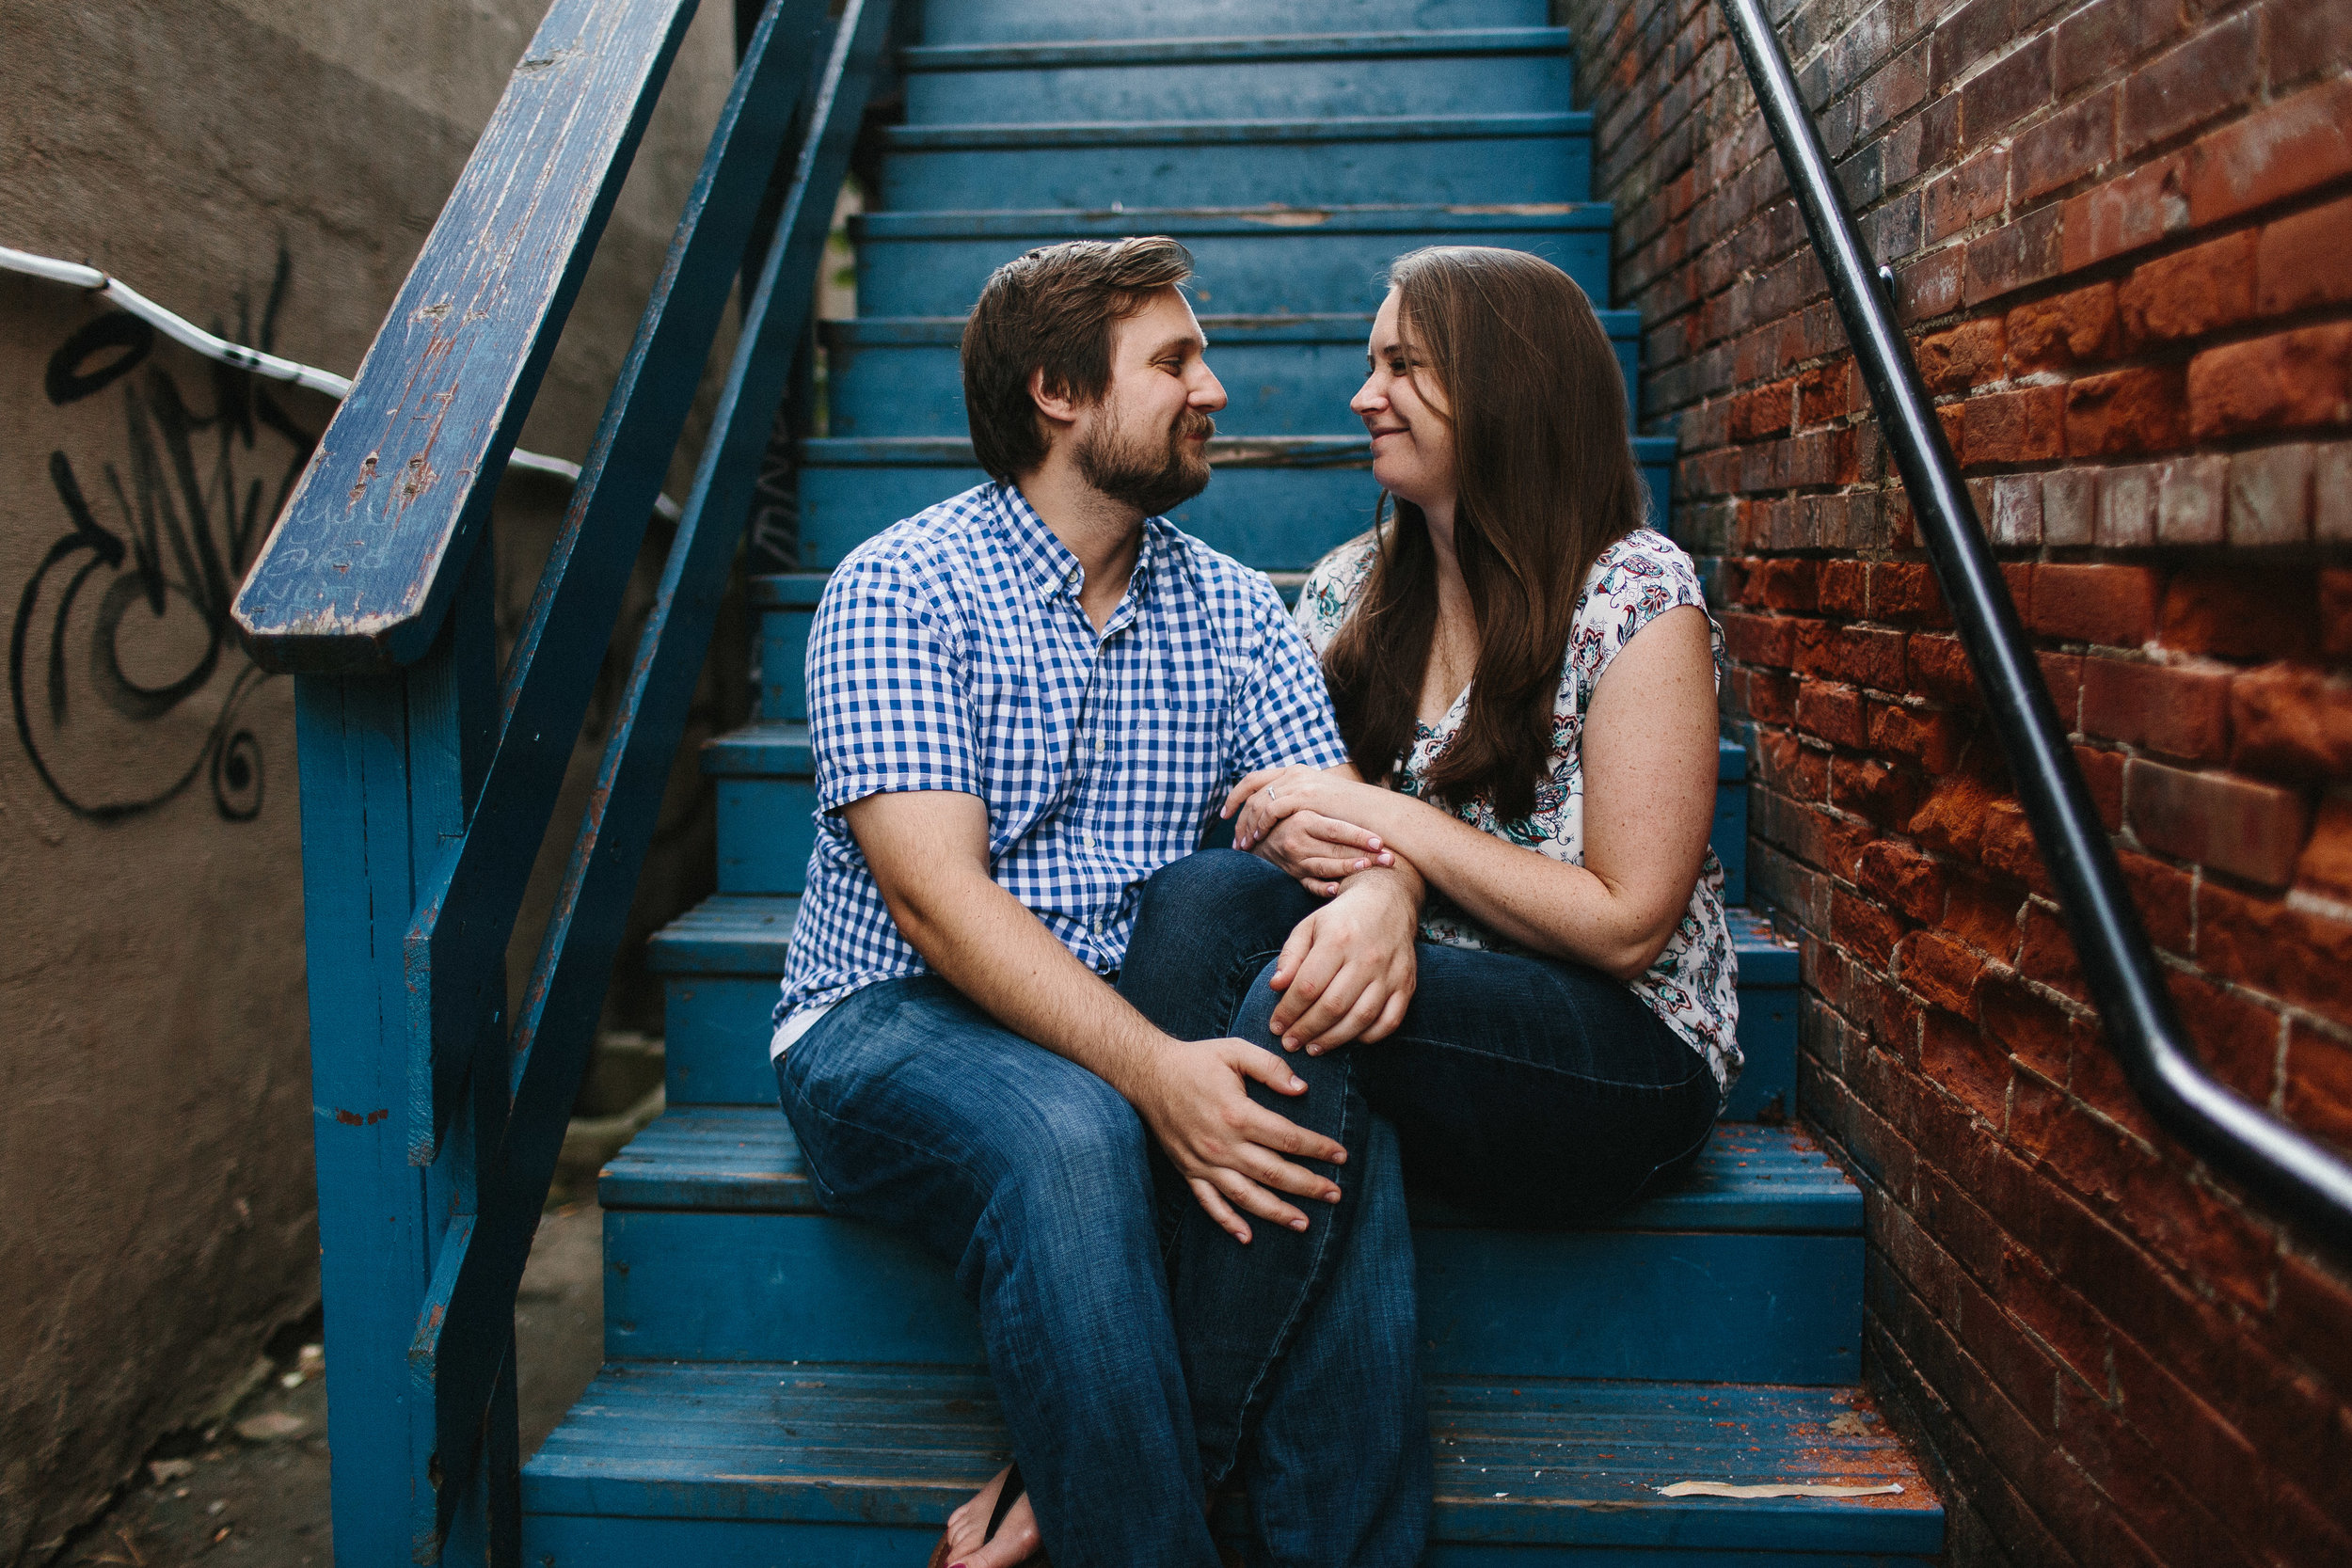 iowa_city_engagement_adventure_prairie_graduate_at_home_dog_couples_downtown_wilsons_orchard_1123.jpg